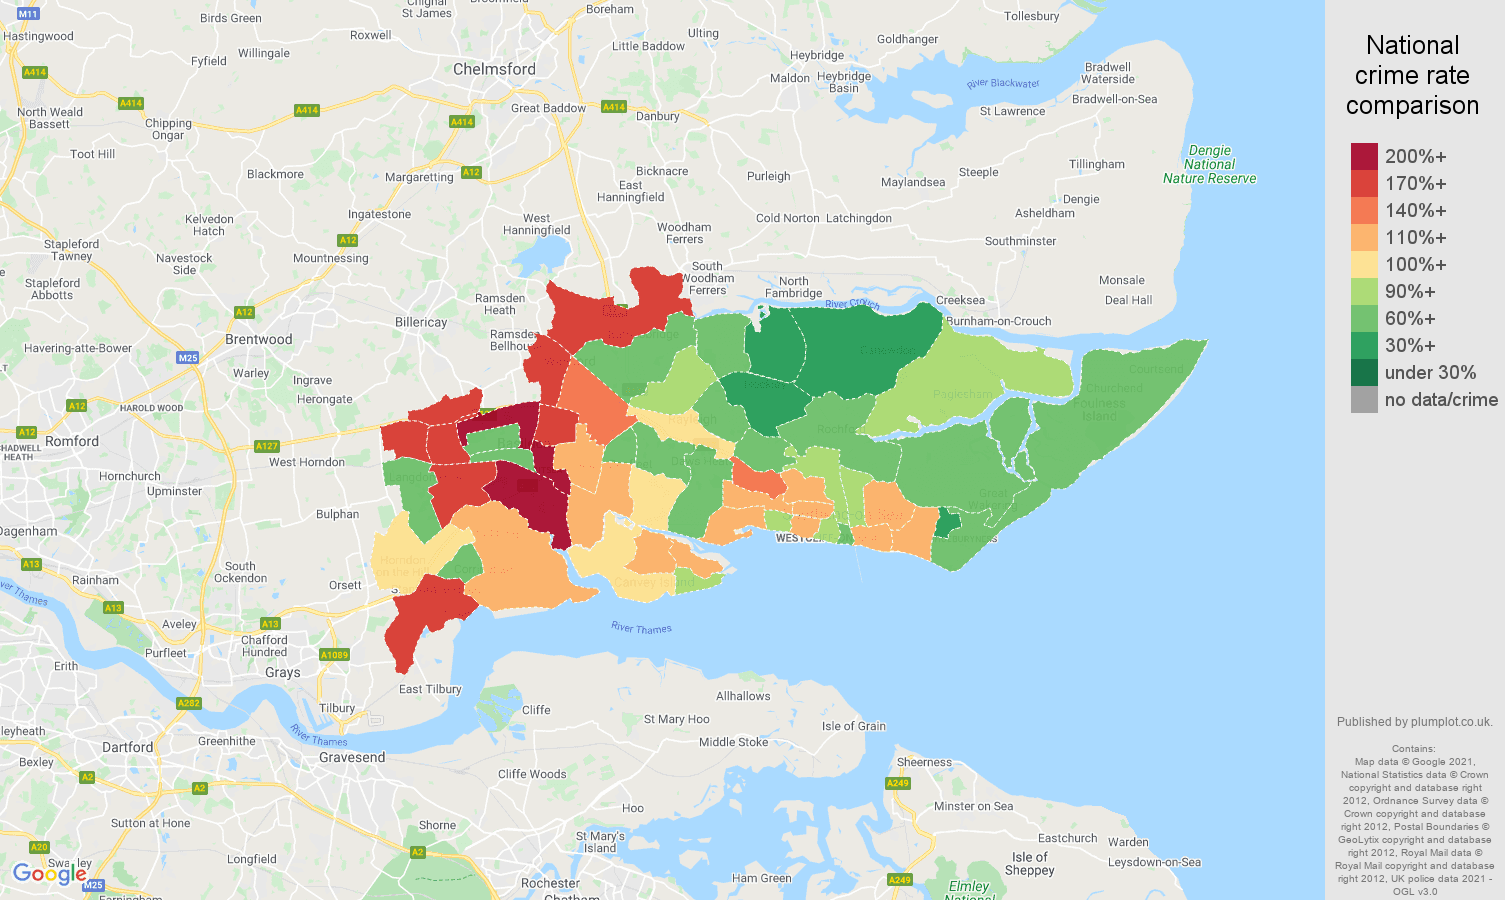 Southend on Sea vehicle crime rate comparison map